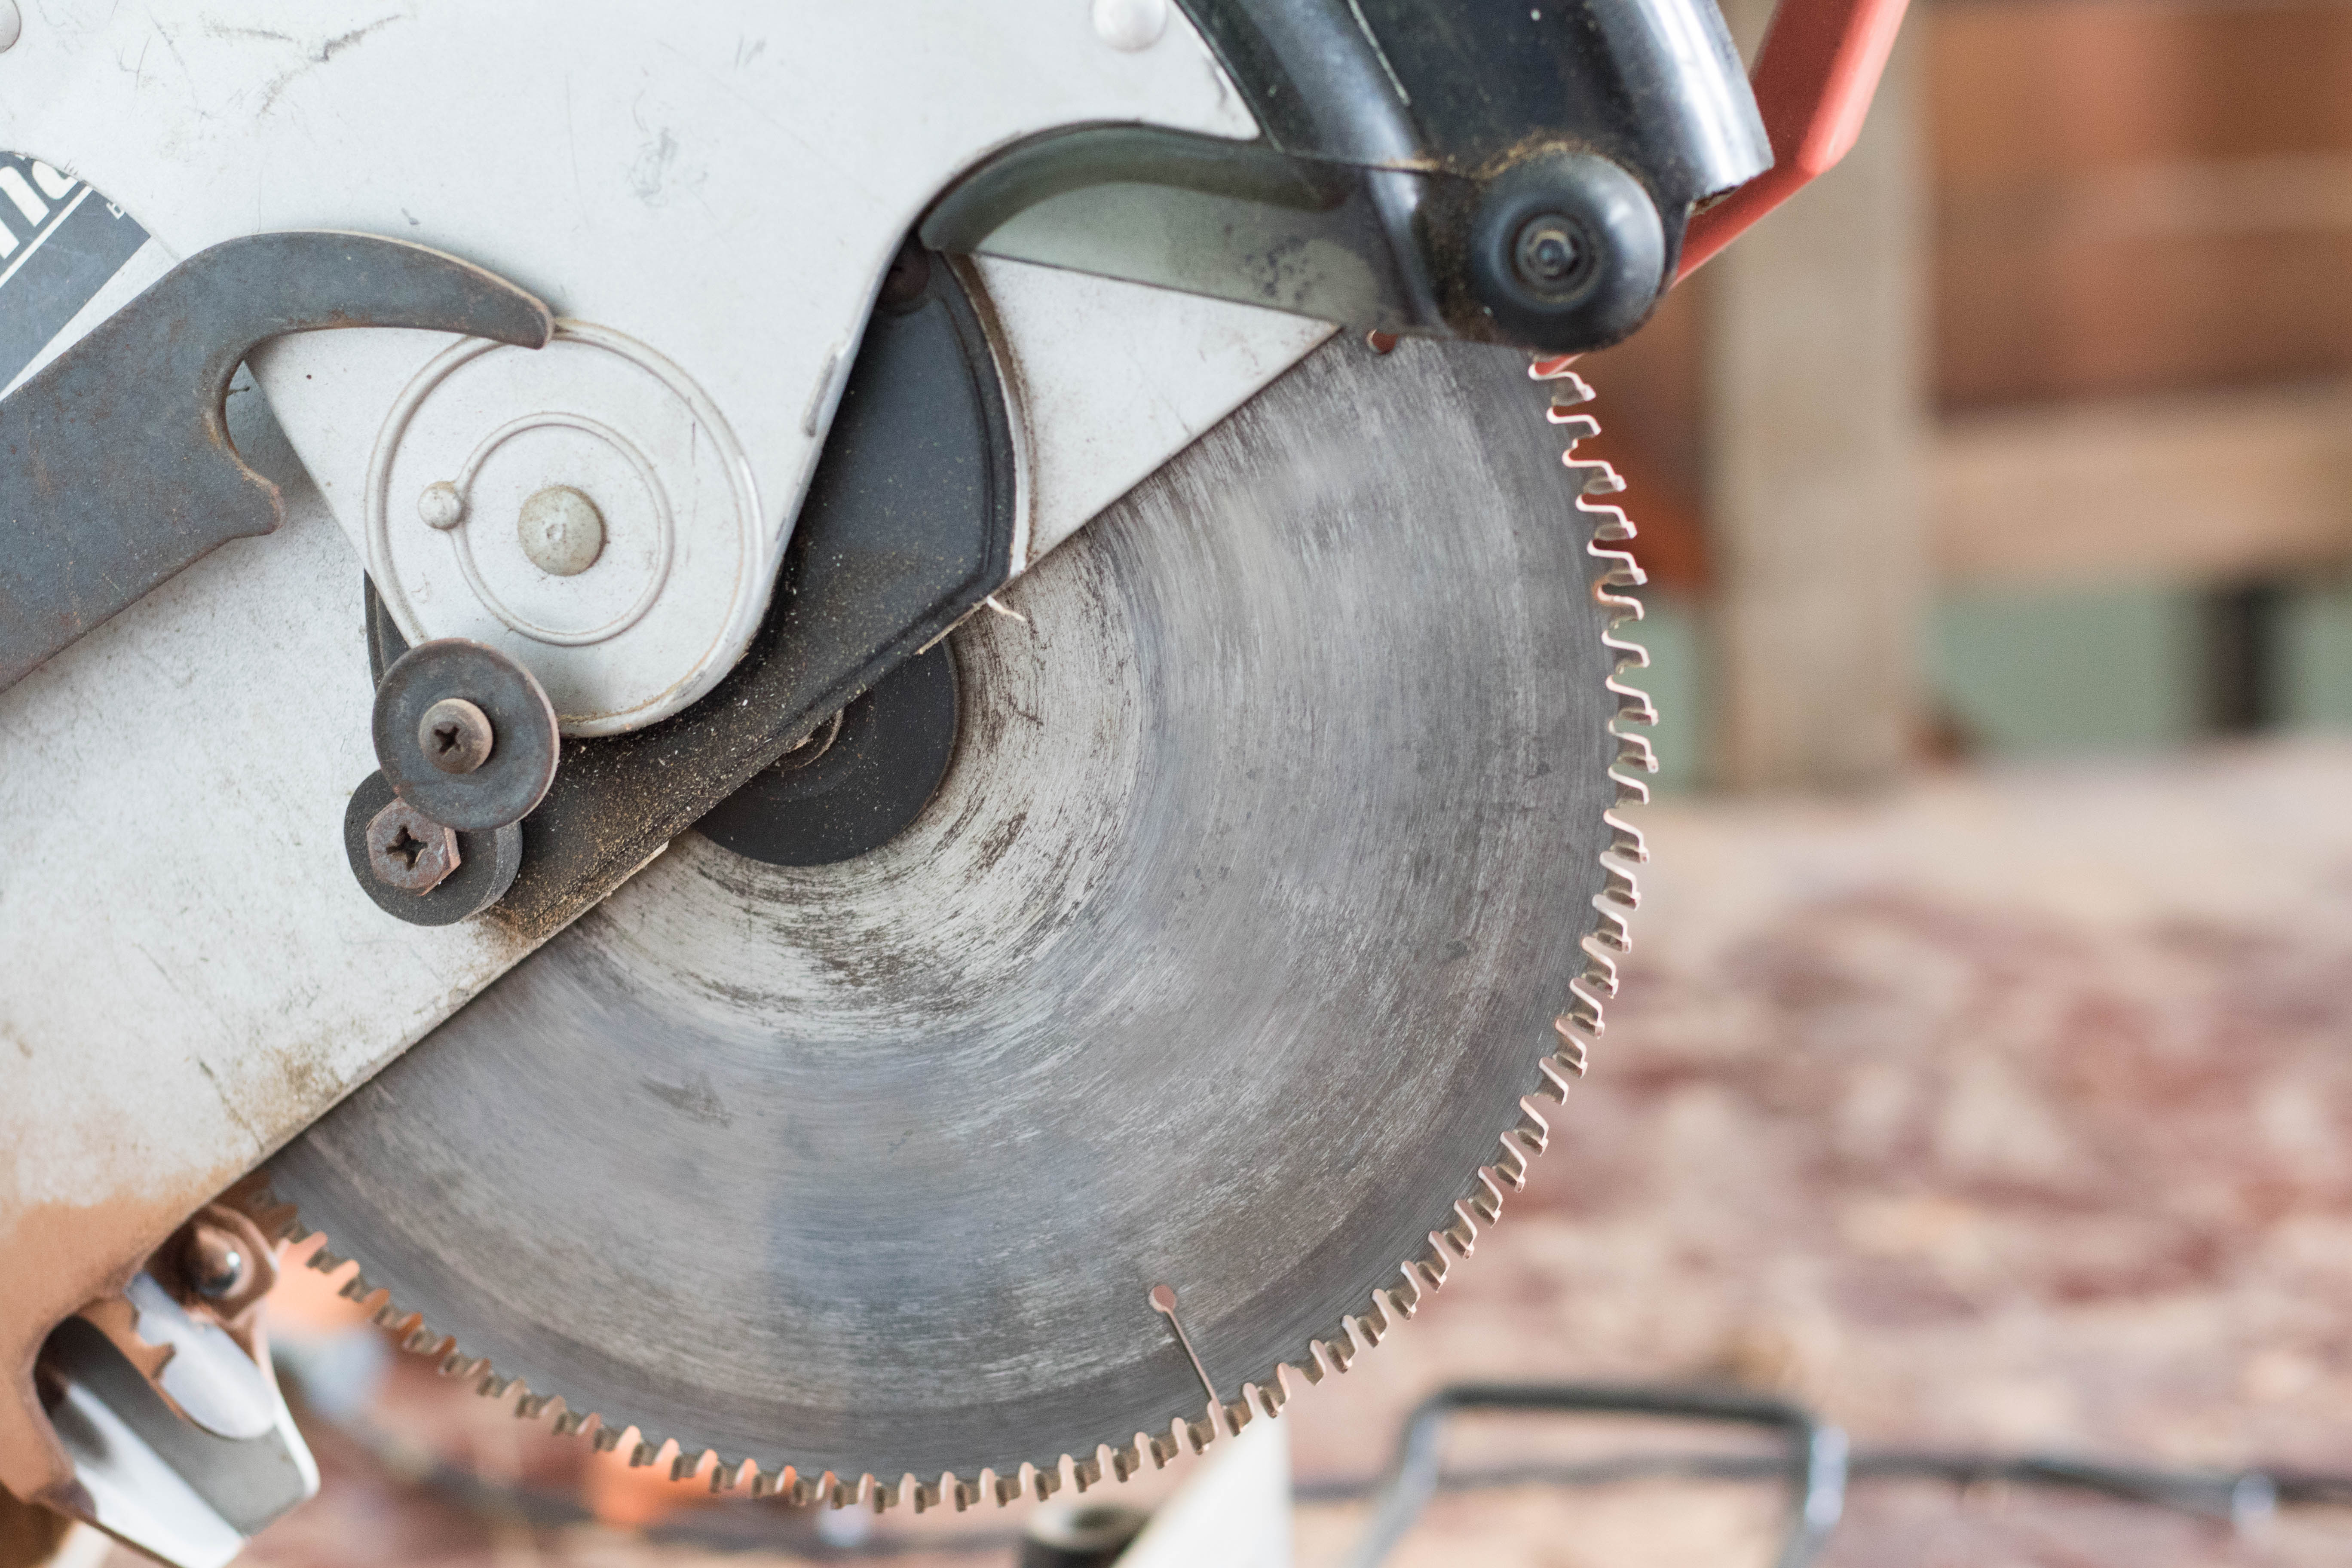 How to Cut Patio Stones with a Circular Saw | Home Guides